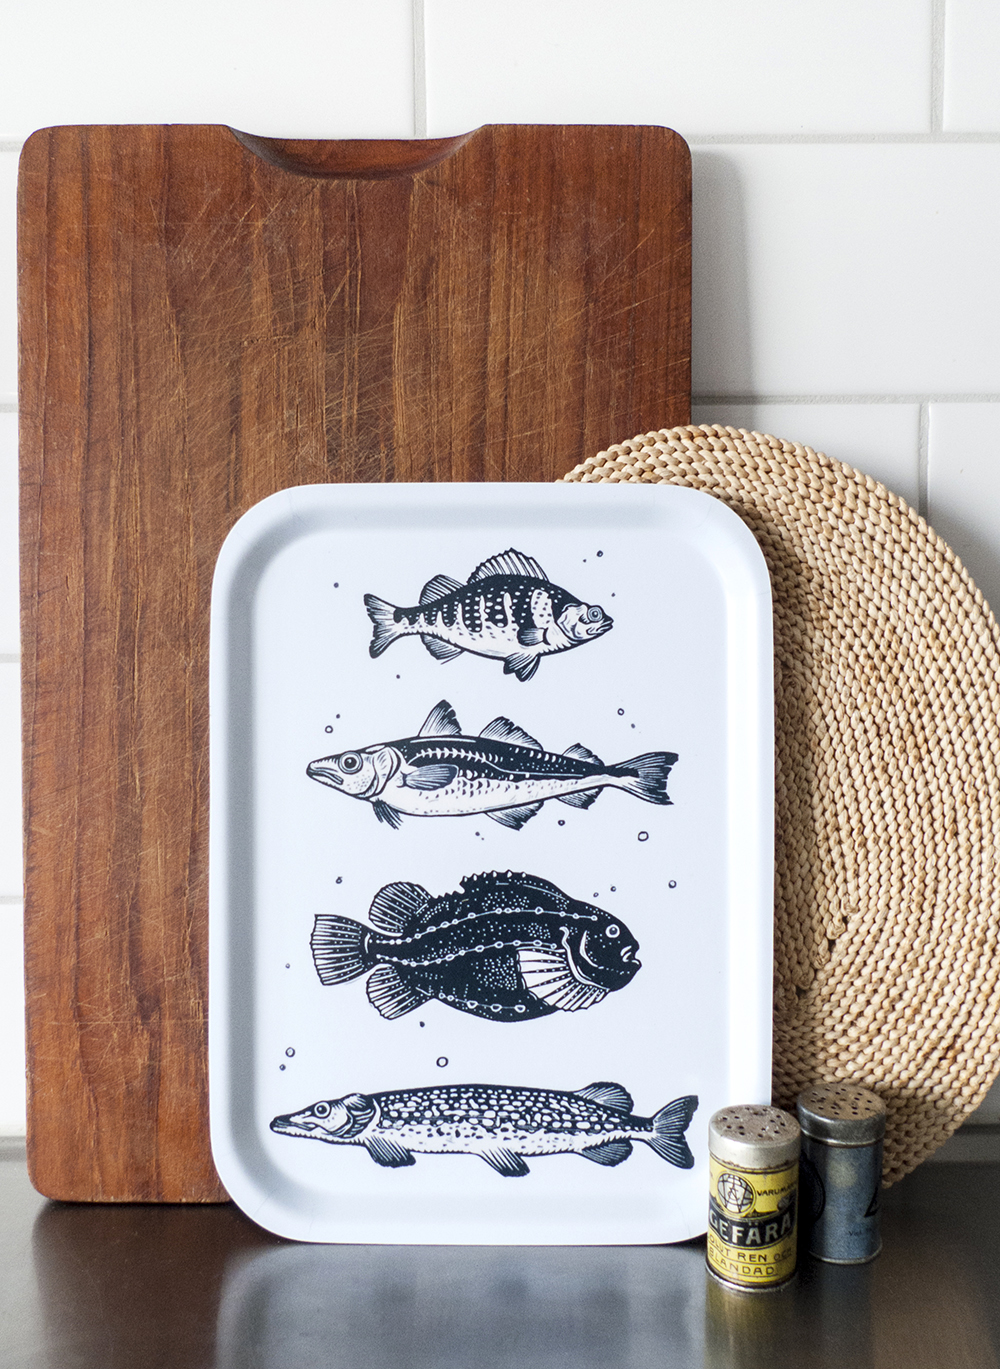 Birch serving trays printed with Tian's linocut designs.